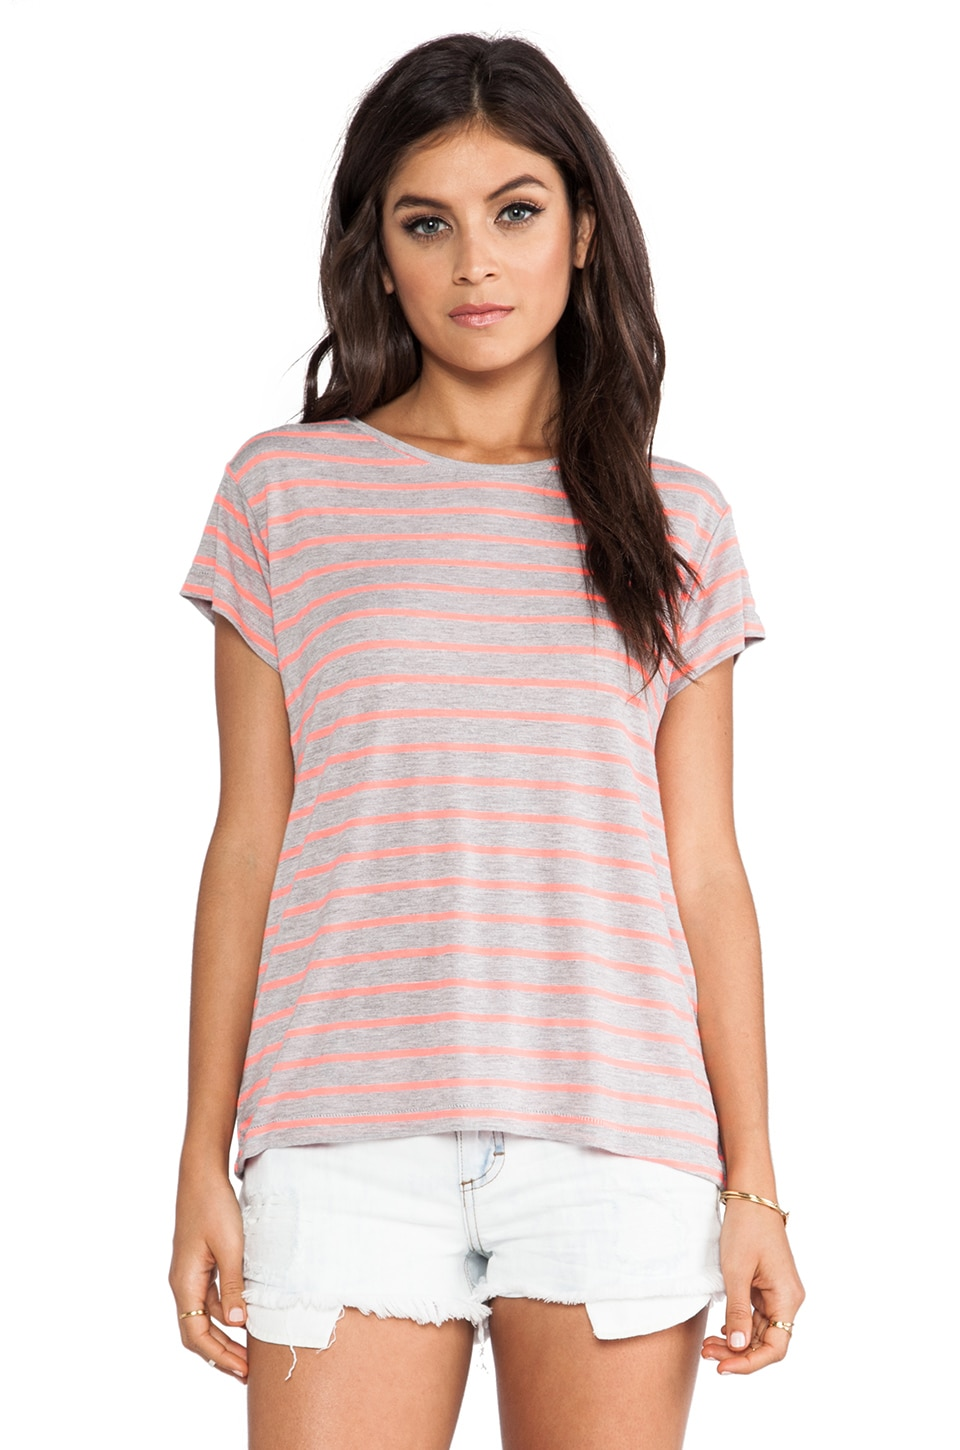 Feel the Piece Striped Champion Tee in Coral & Grey